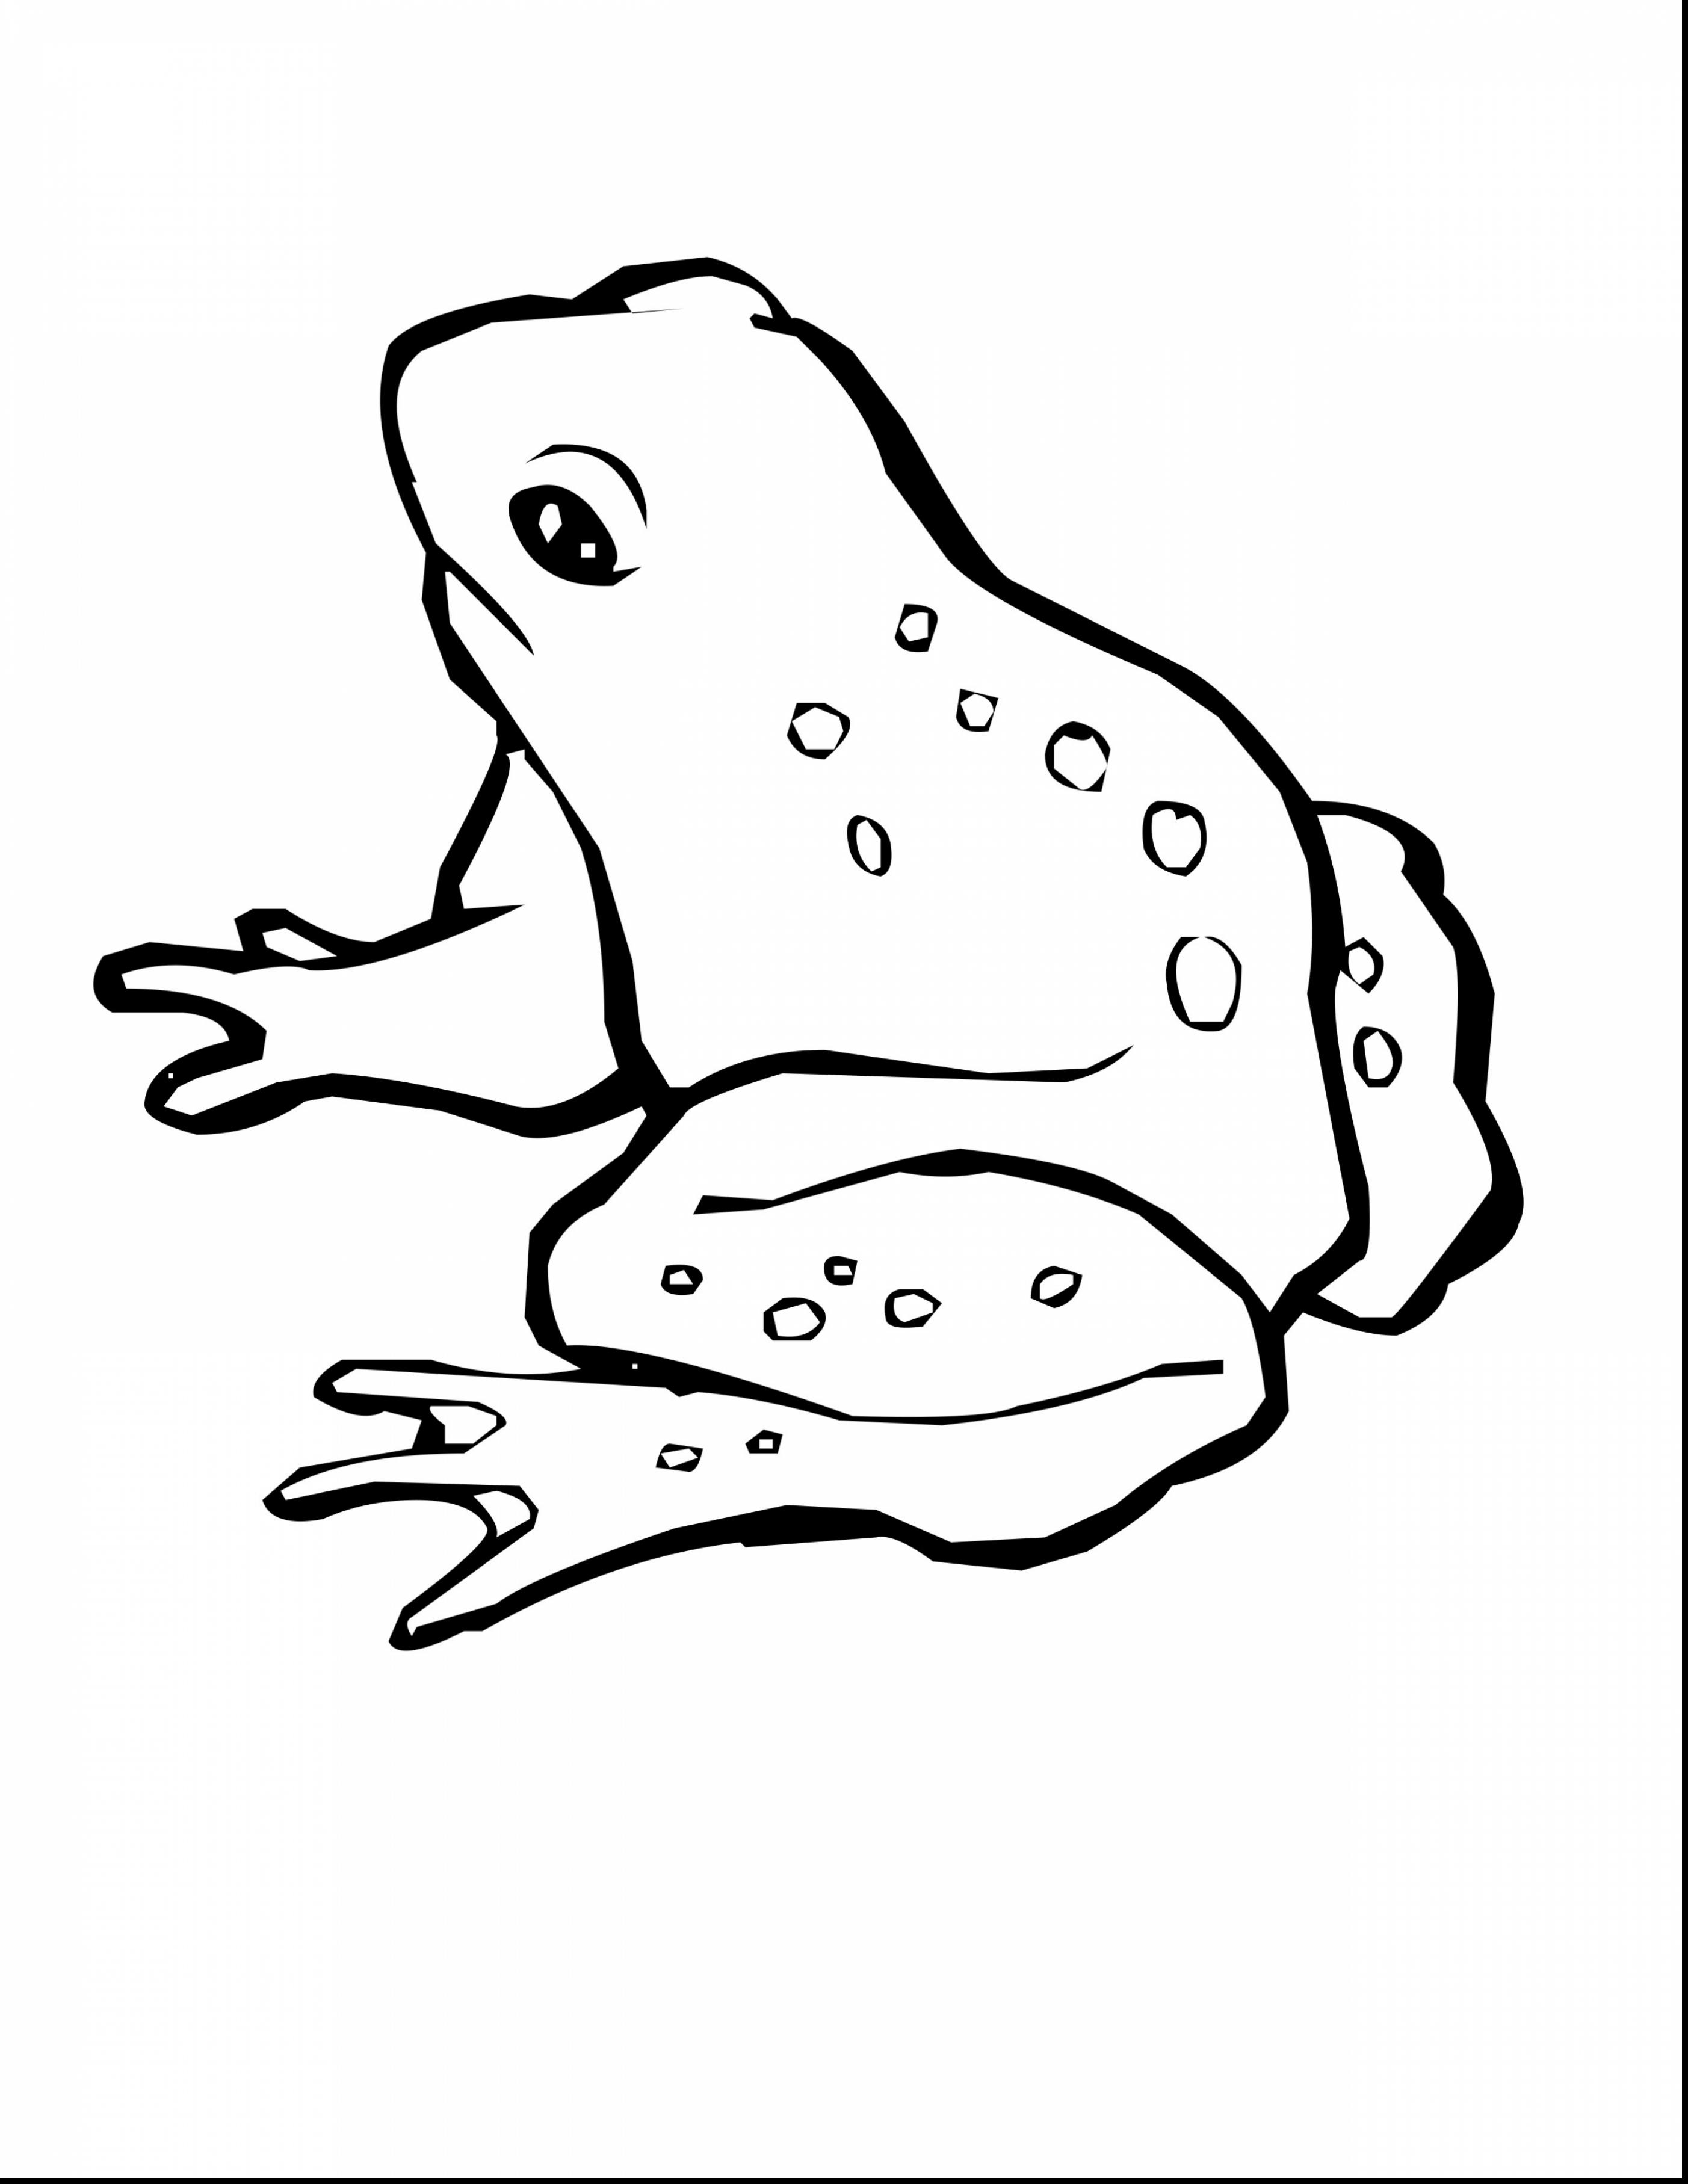 green tree frog coloring page green tree frog drawing at getdrawings free download page coloring frog tree green